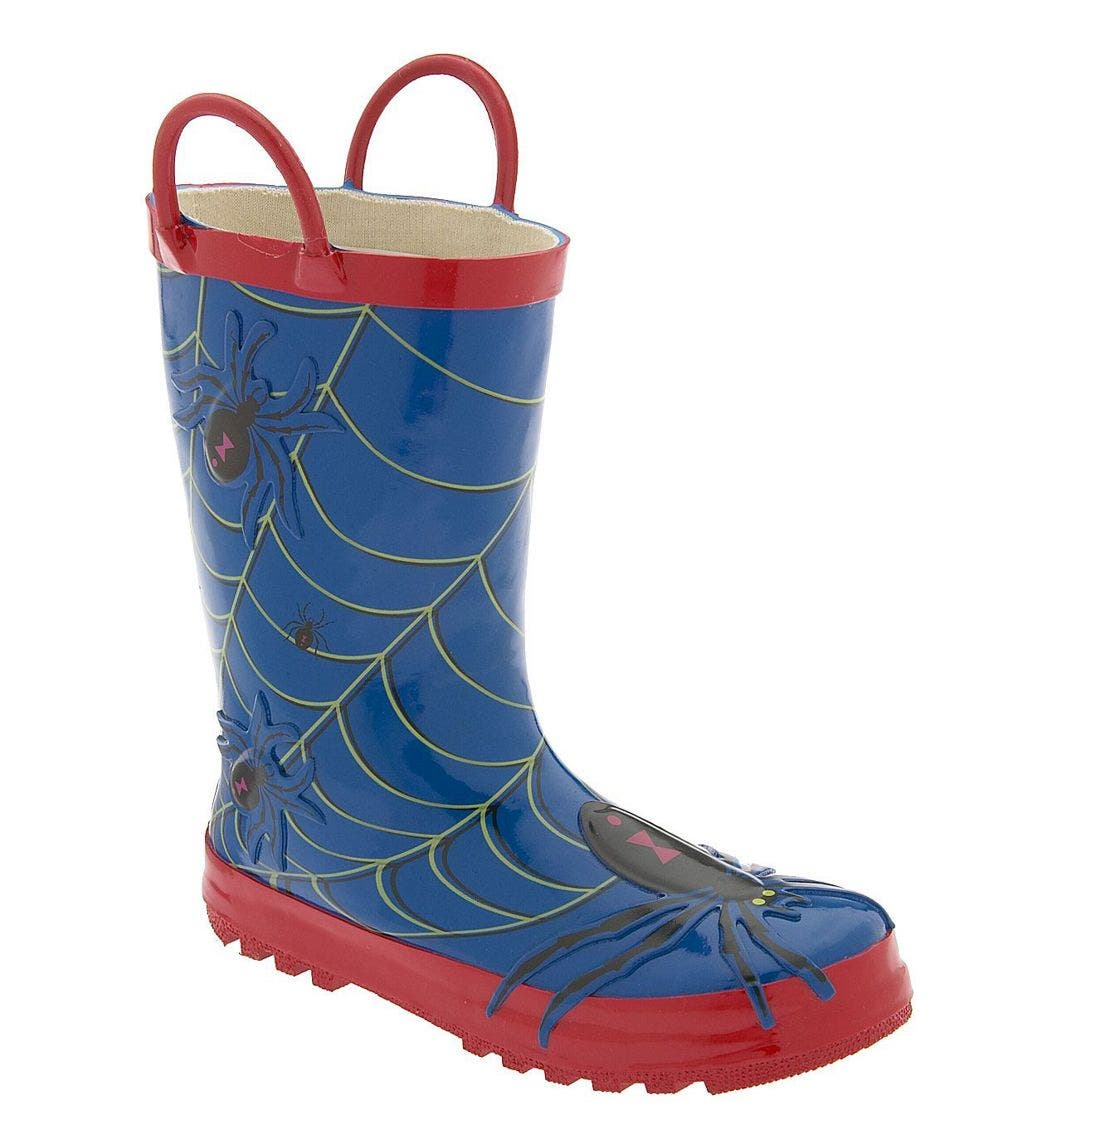 Main Image - Western Chief 'Spider' Boot (Toddler & Little Kids)